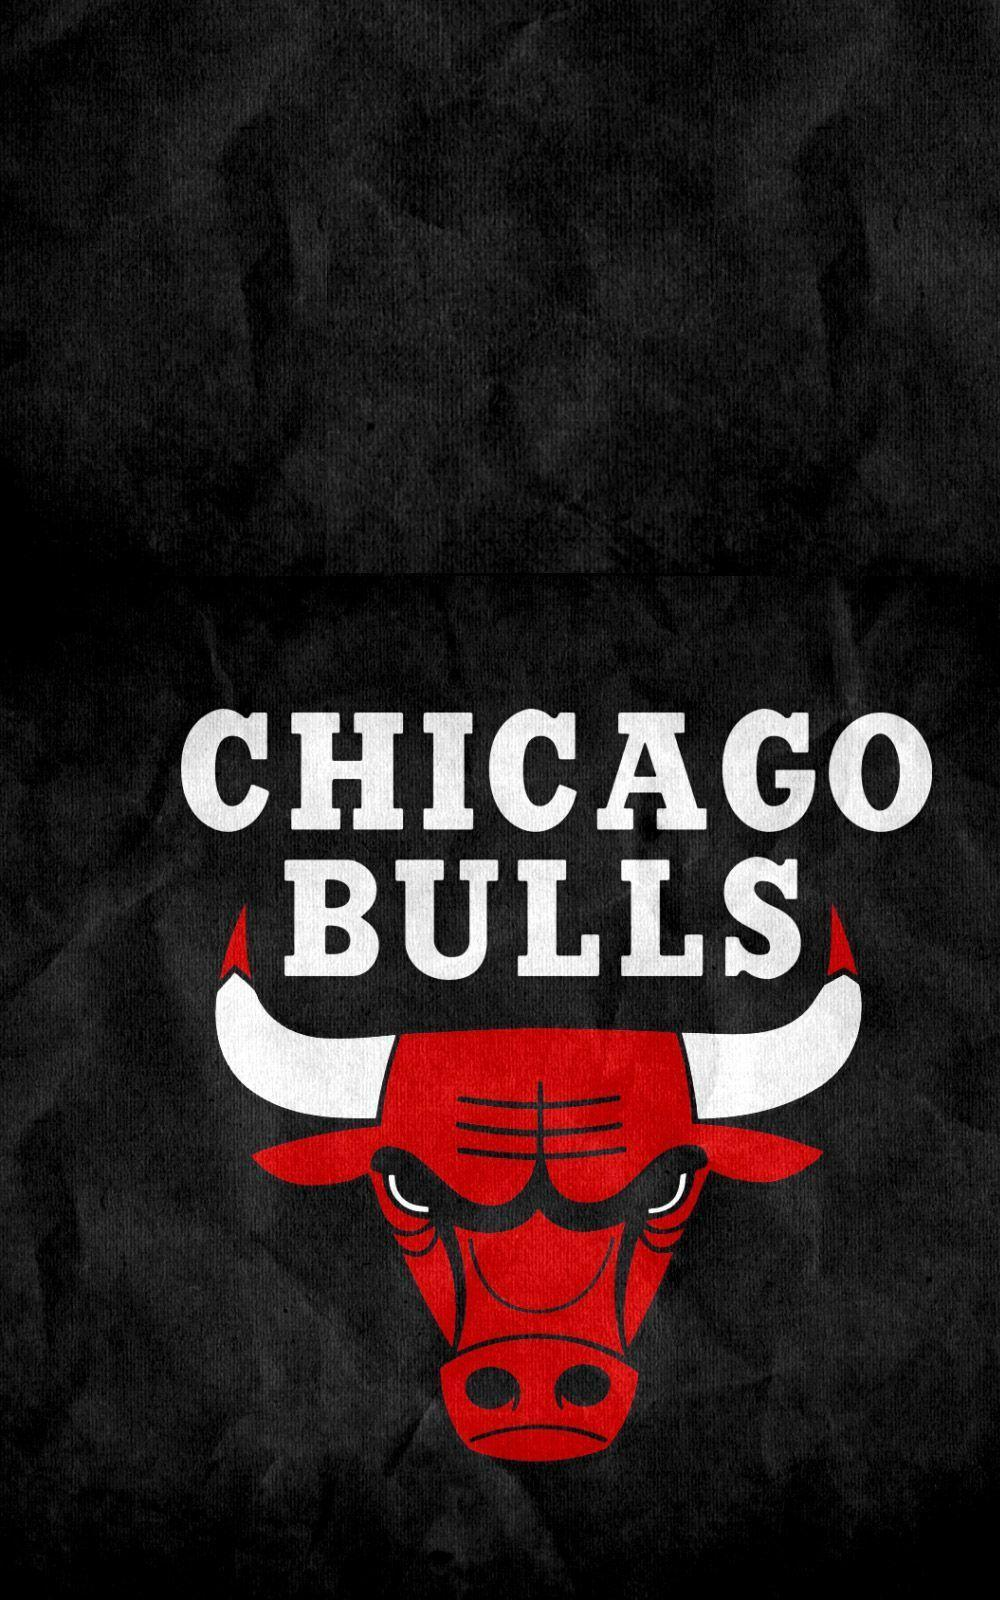 chicago bulls wallpapers hd 2016 - wallpaper cave